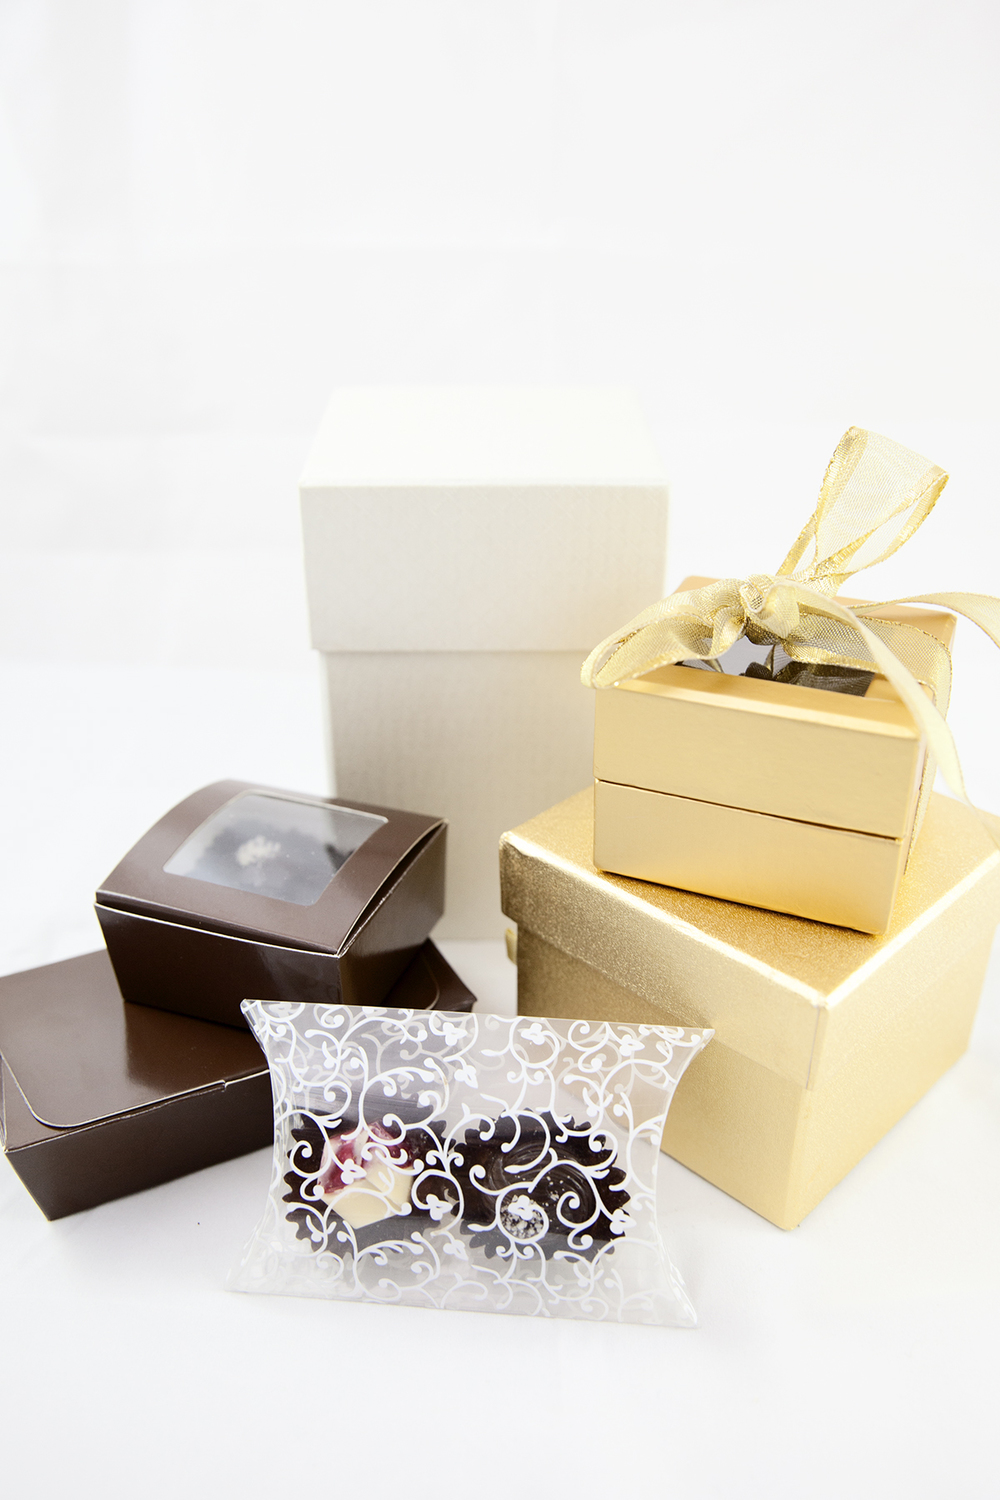 GiftBoxes_002.jpg